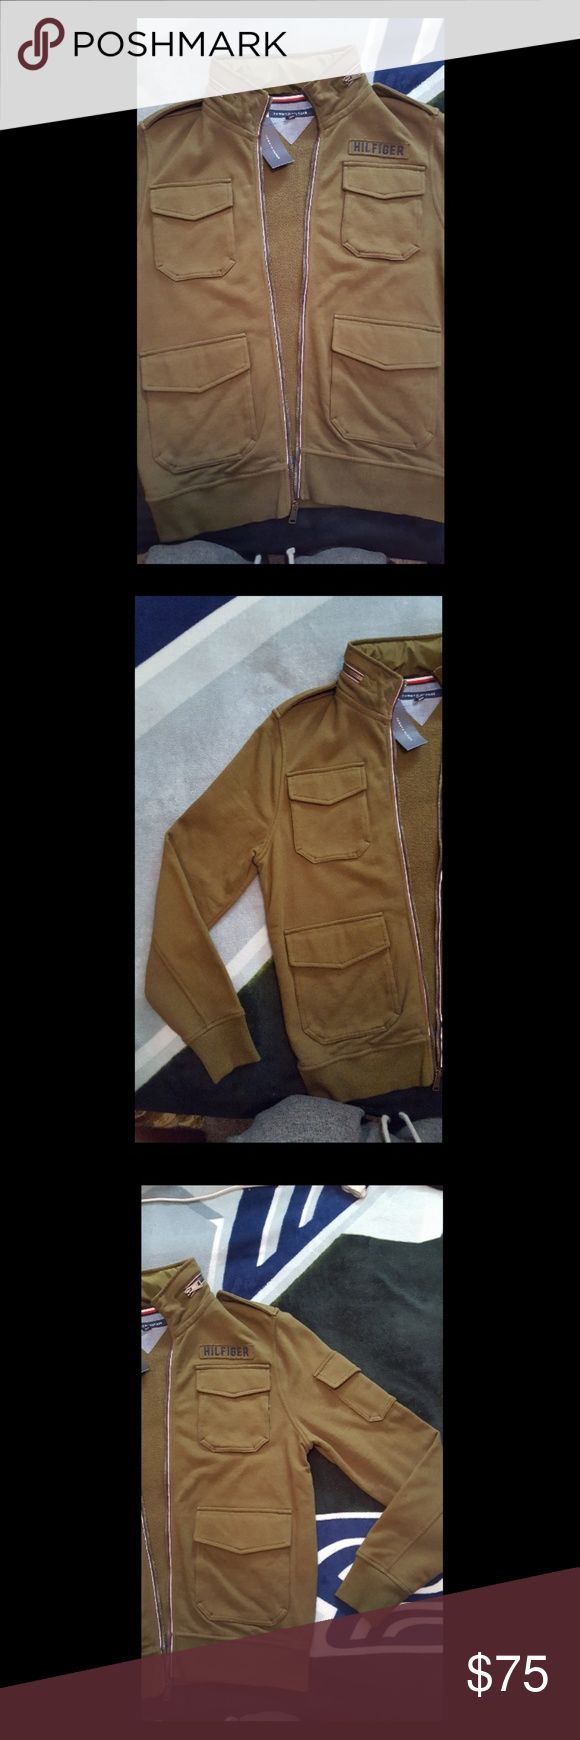 Tommy Hilfiger Military/Bomber Jacket Tommy Hilfiger Men's Ernesto Full-Zip Cotton Jacket (only one I've seen in this military green color) New with tags still attached! MSRP: $149.00 Tommy Hilfiger Jackets & Coats Military & Field